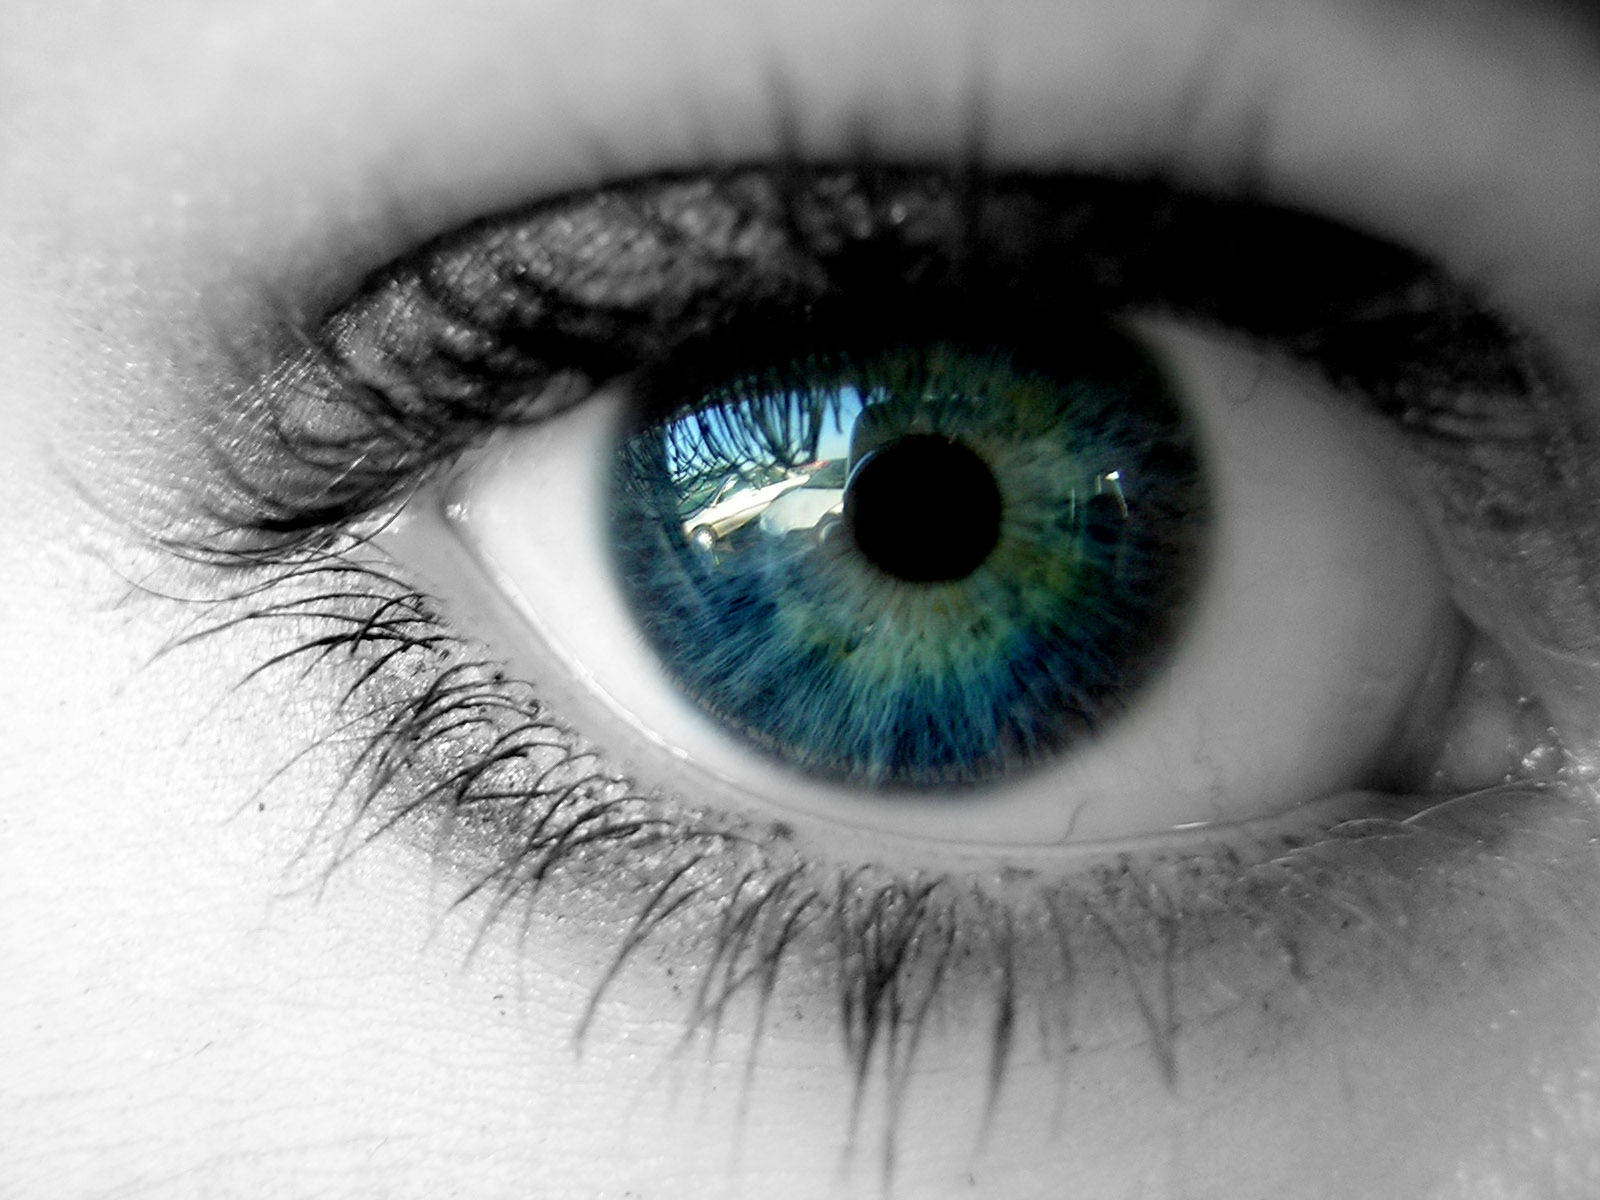 The number one cause of blindness in adults in the United States is diabetes.